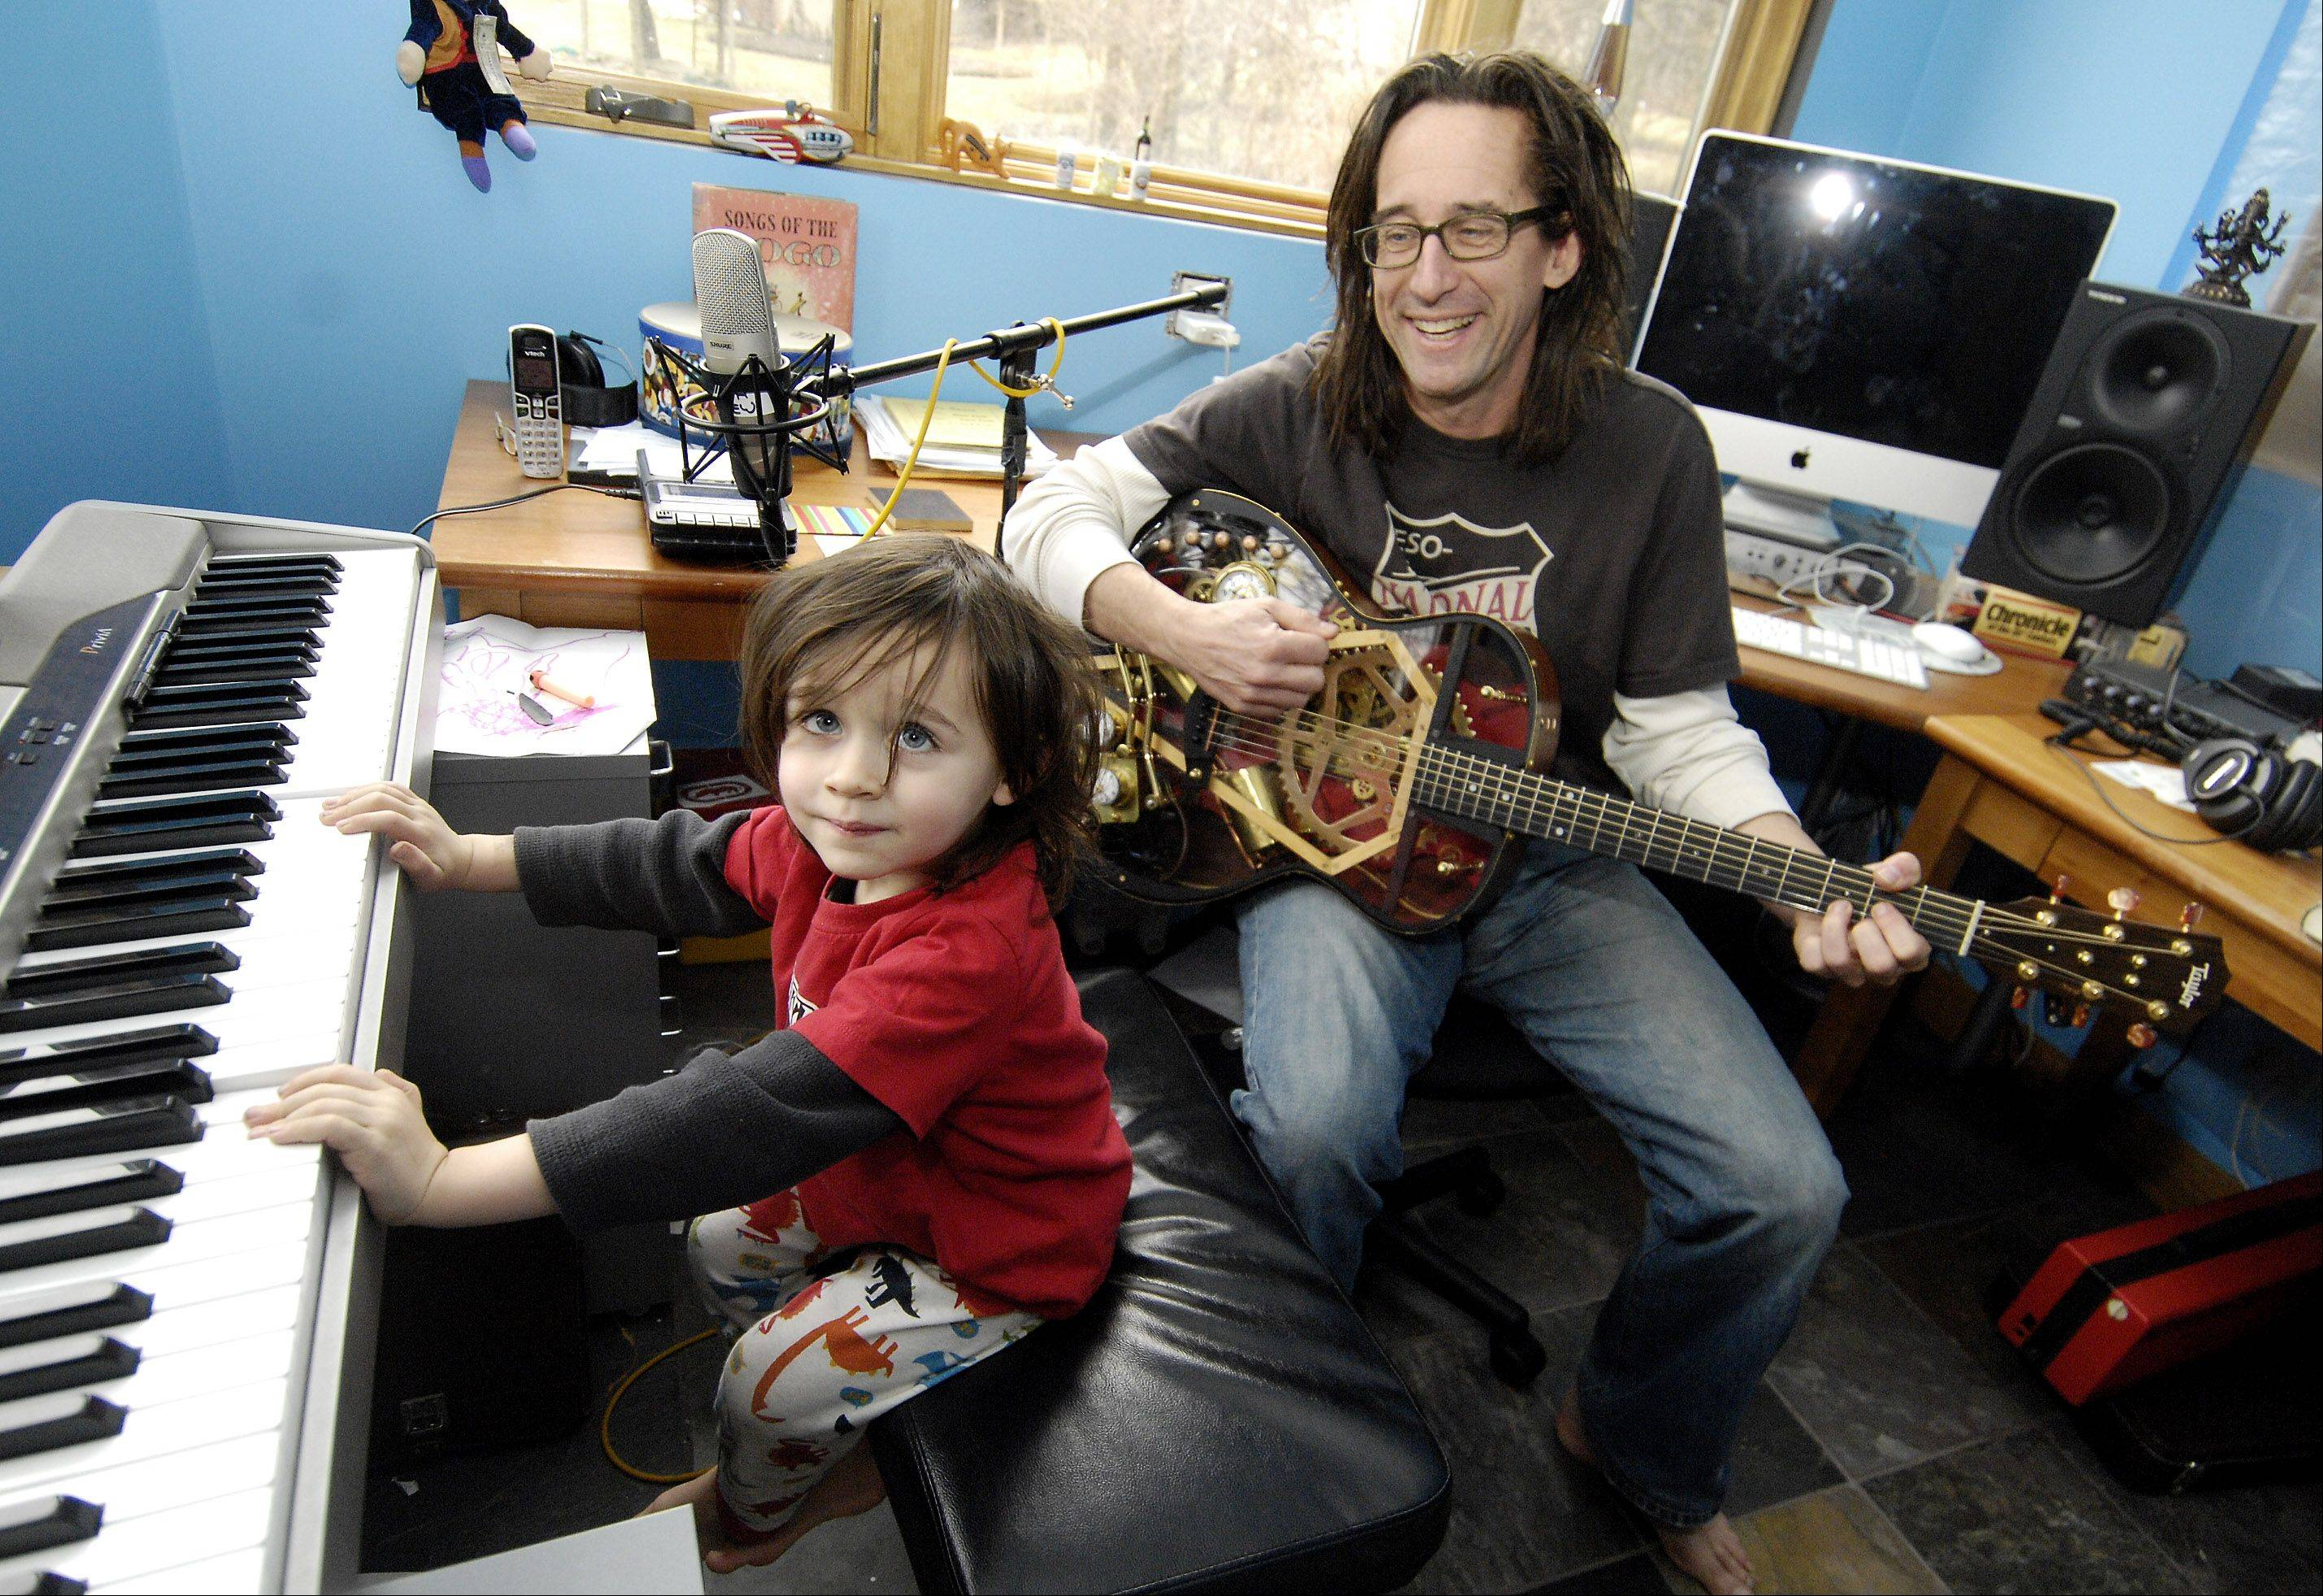 Ralph Covert of Glen Ellyn, frontman for The Bad Examples and Ralph's World, plays music with his son Jude, 2.